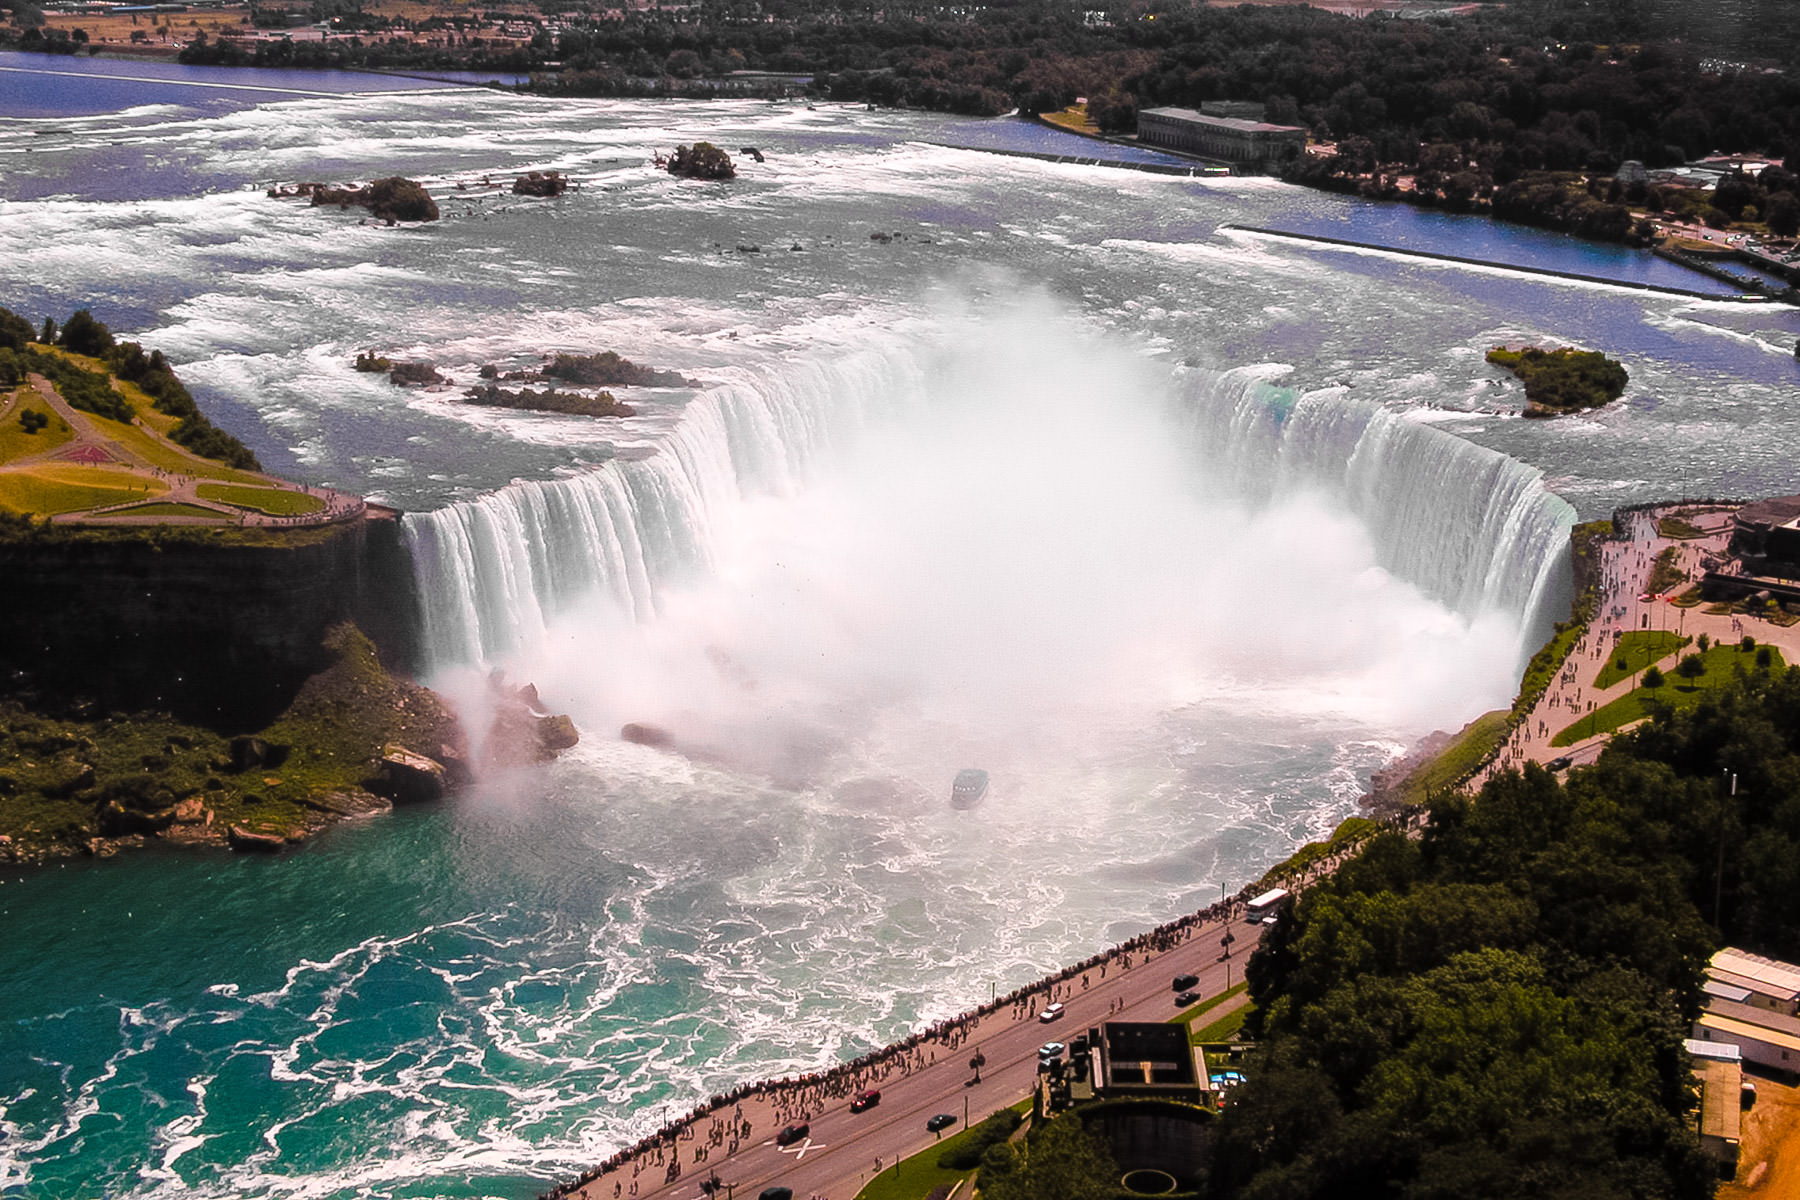 The Canadian (Horseshoe) Falls at Niagara Falls, Ontario, as seen from the nearby Skylon Tower.